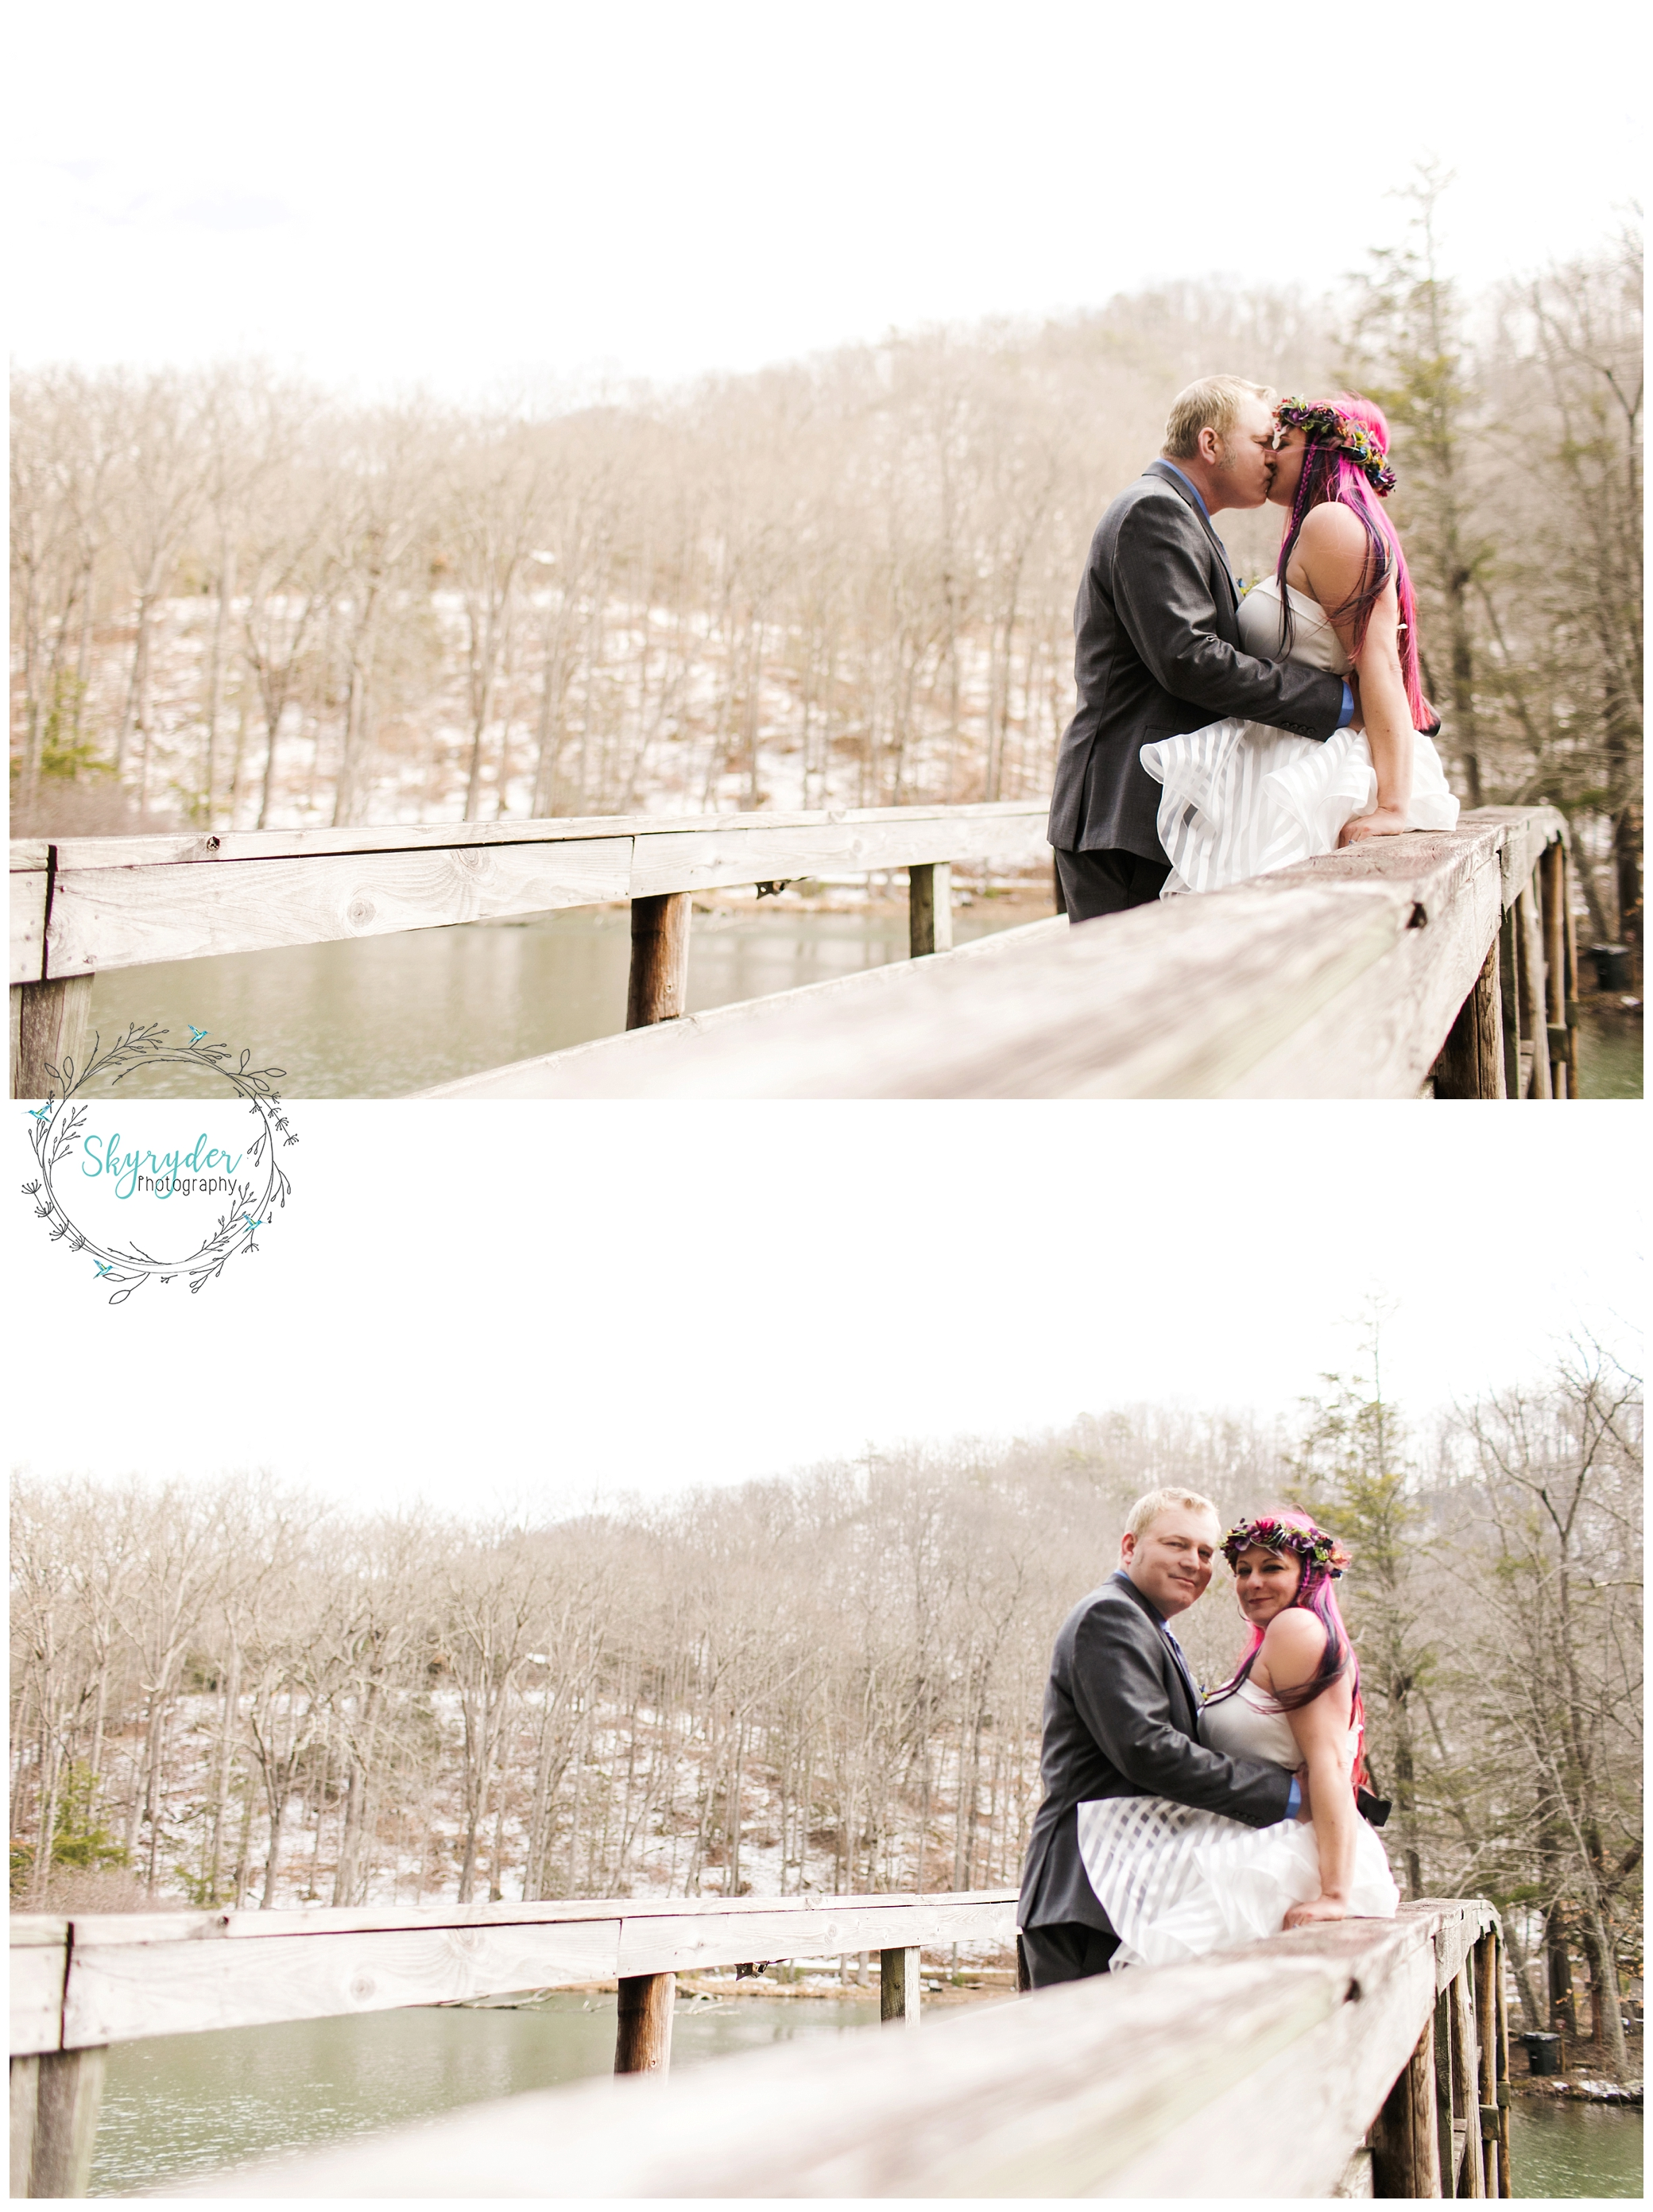 Jasmin + Todd | Virginia Elopement + Wedding Photography